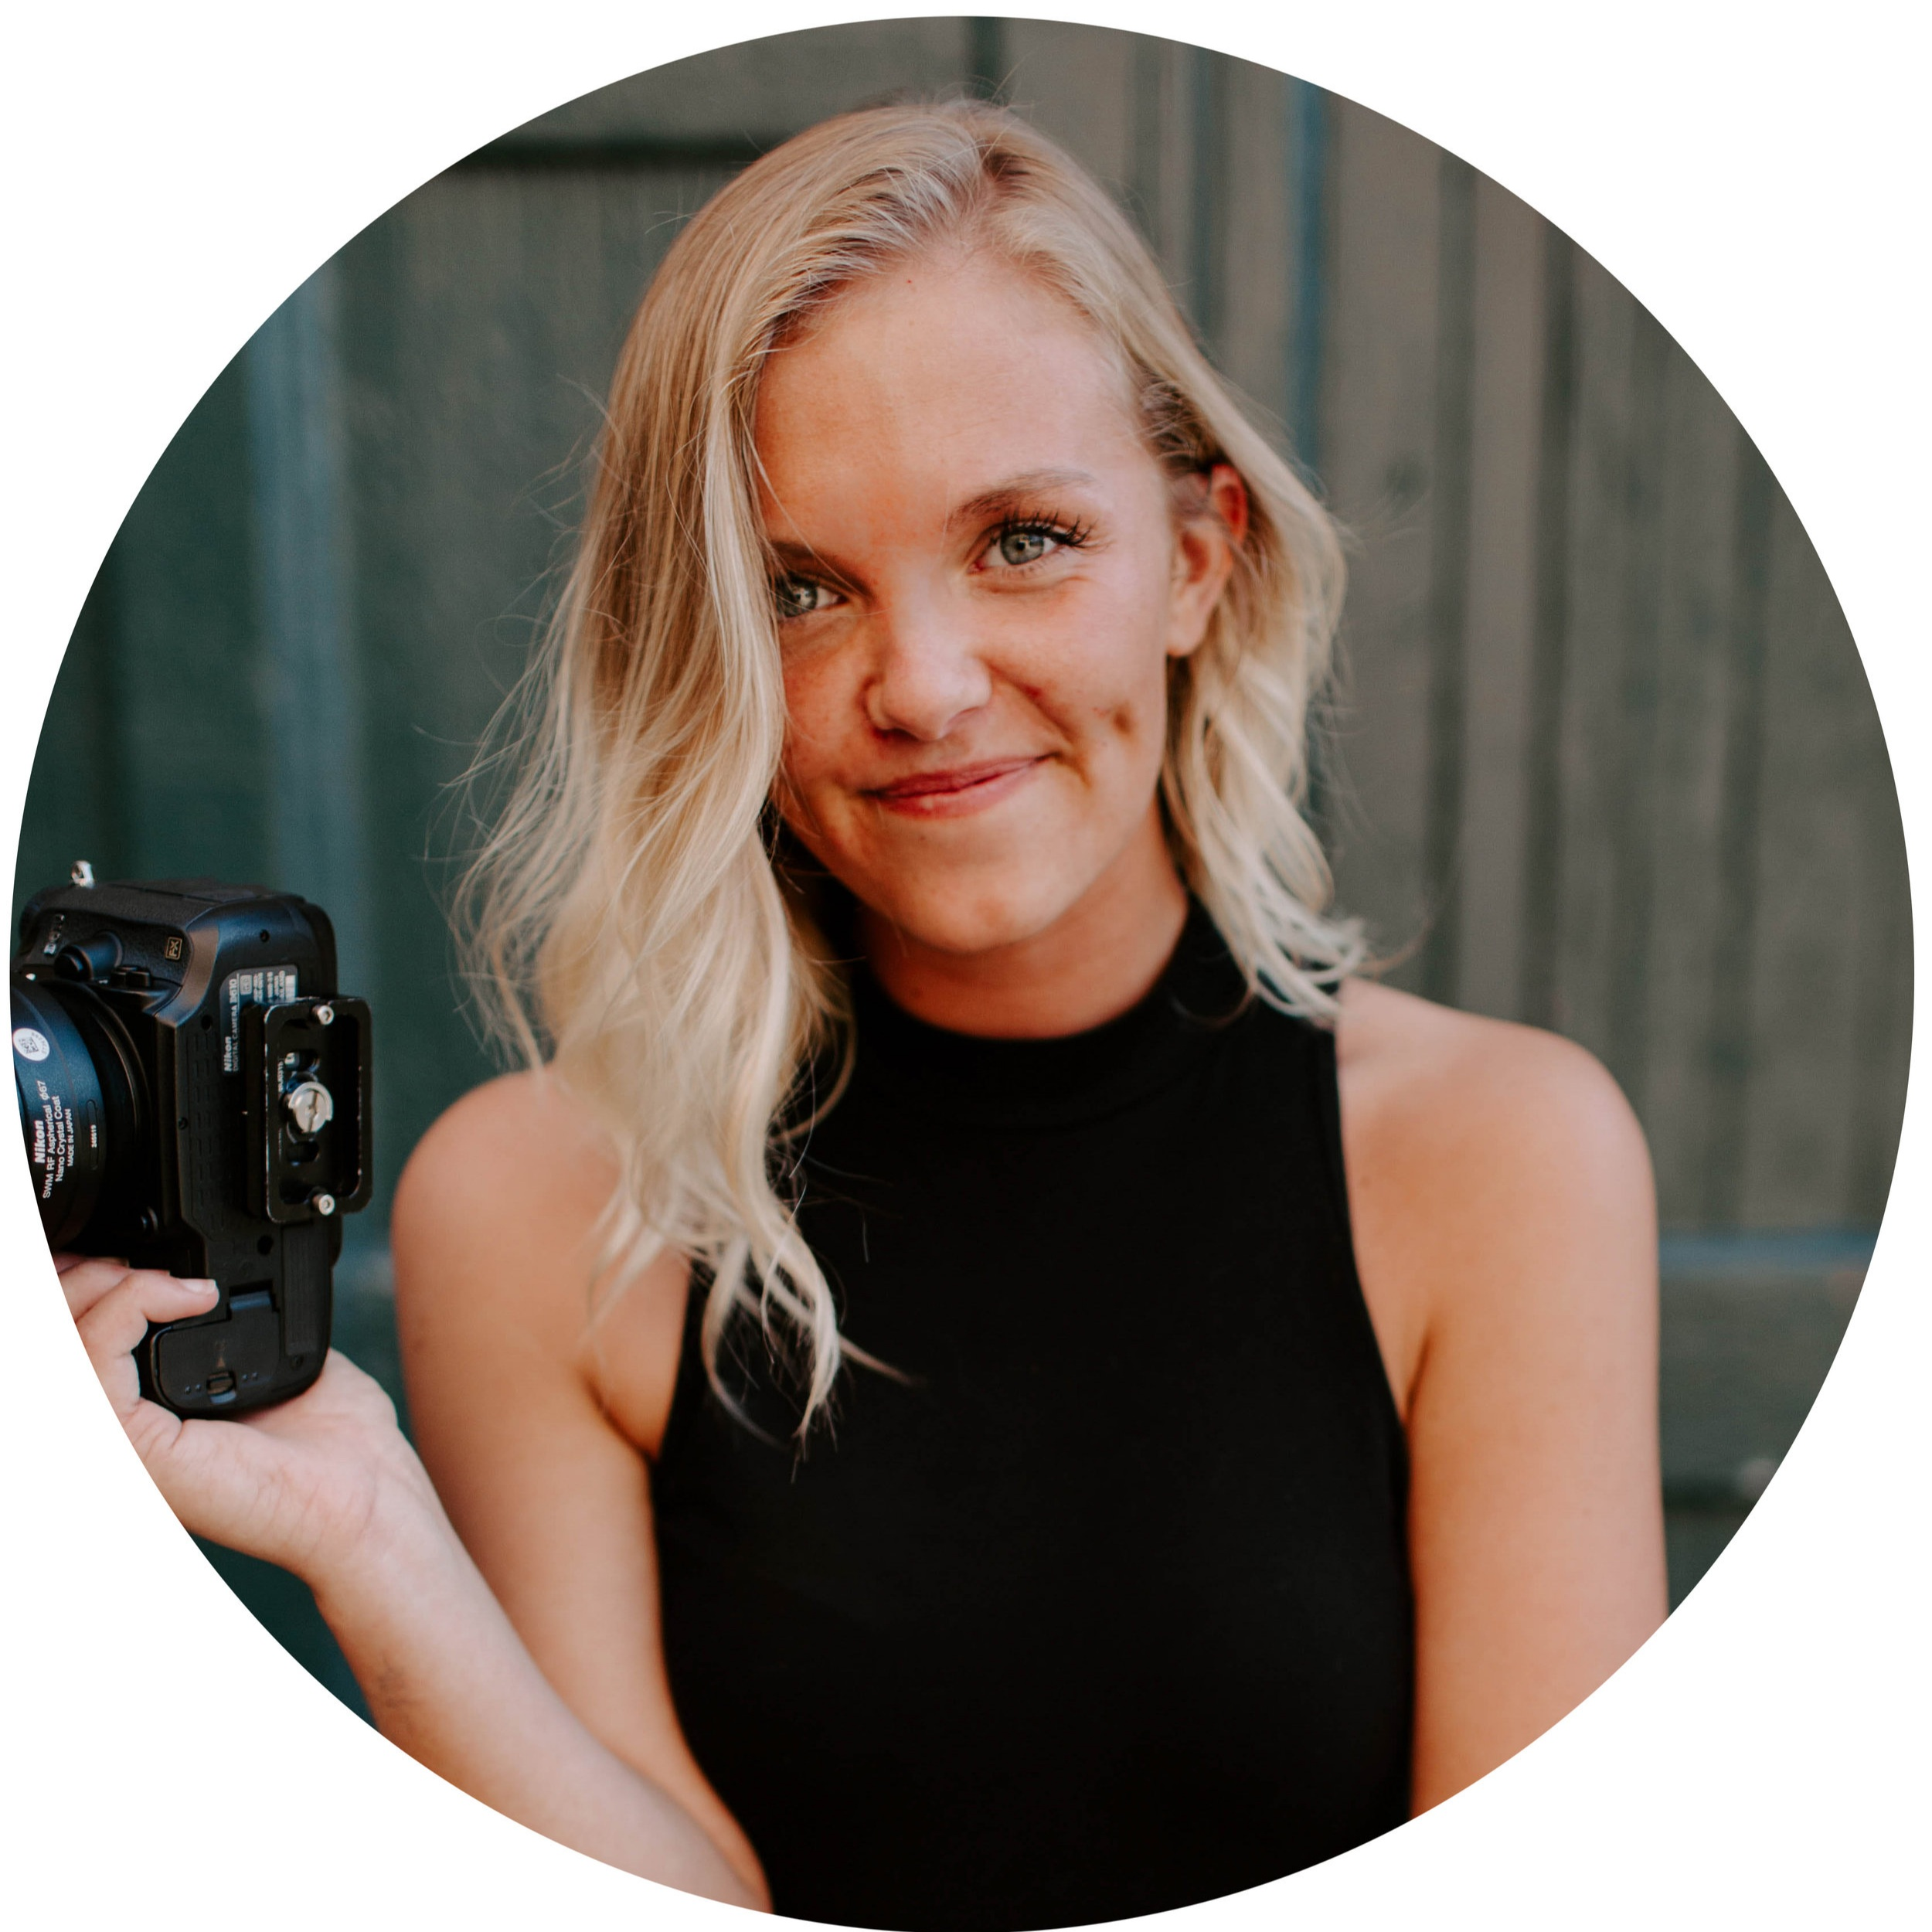 Erin is one of our photographers! She lives in the beautiful Blue Ridge Mountains and loves photography and videography! Among the many things that make Erin a special part of our team, we love that she captures both photography and videography and has a great knowledge of both things! Erin is the sweetest and adds such a special touch to her client care when capturing your special day! We feel so fortunate to have her on our team!